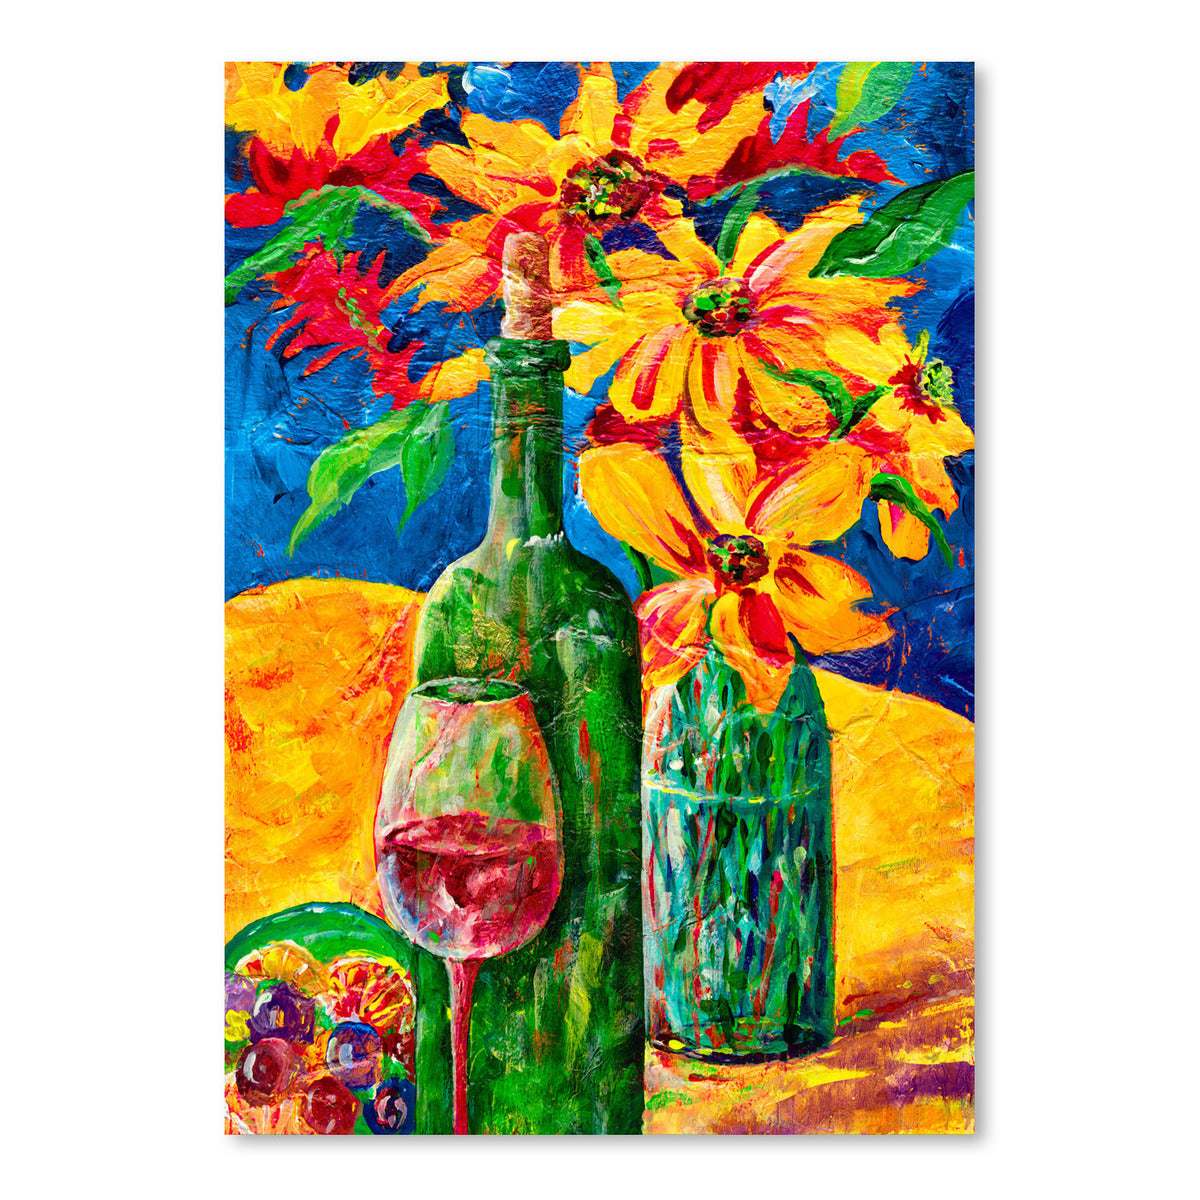 Wine And Flowers by Sunshine Taylor Art Print - Art Print - Americanflat